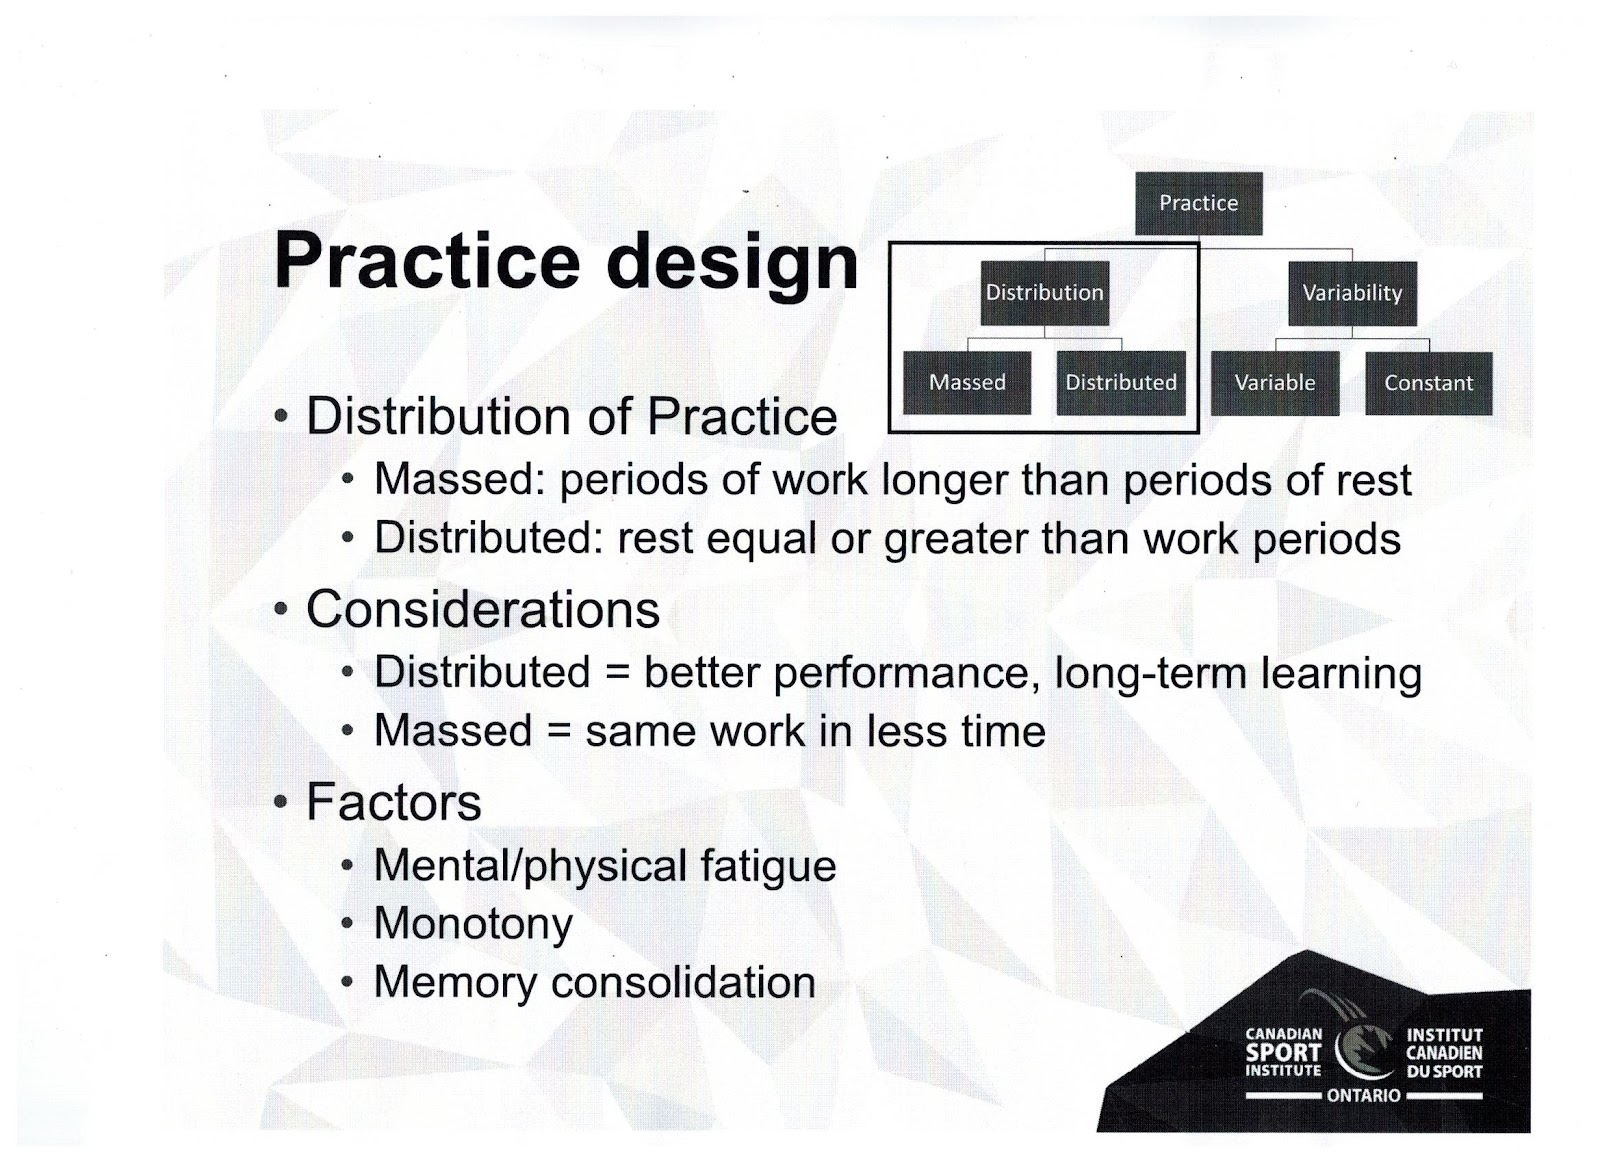 Image of Practice Design - Distribution of Practice